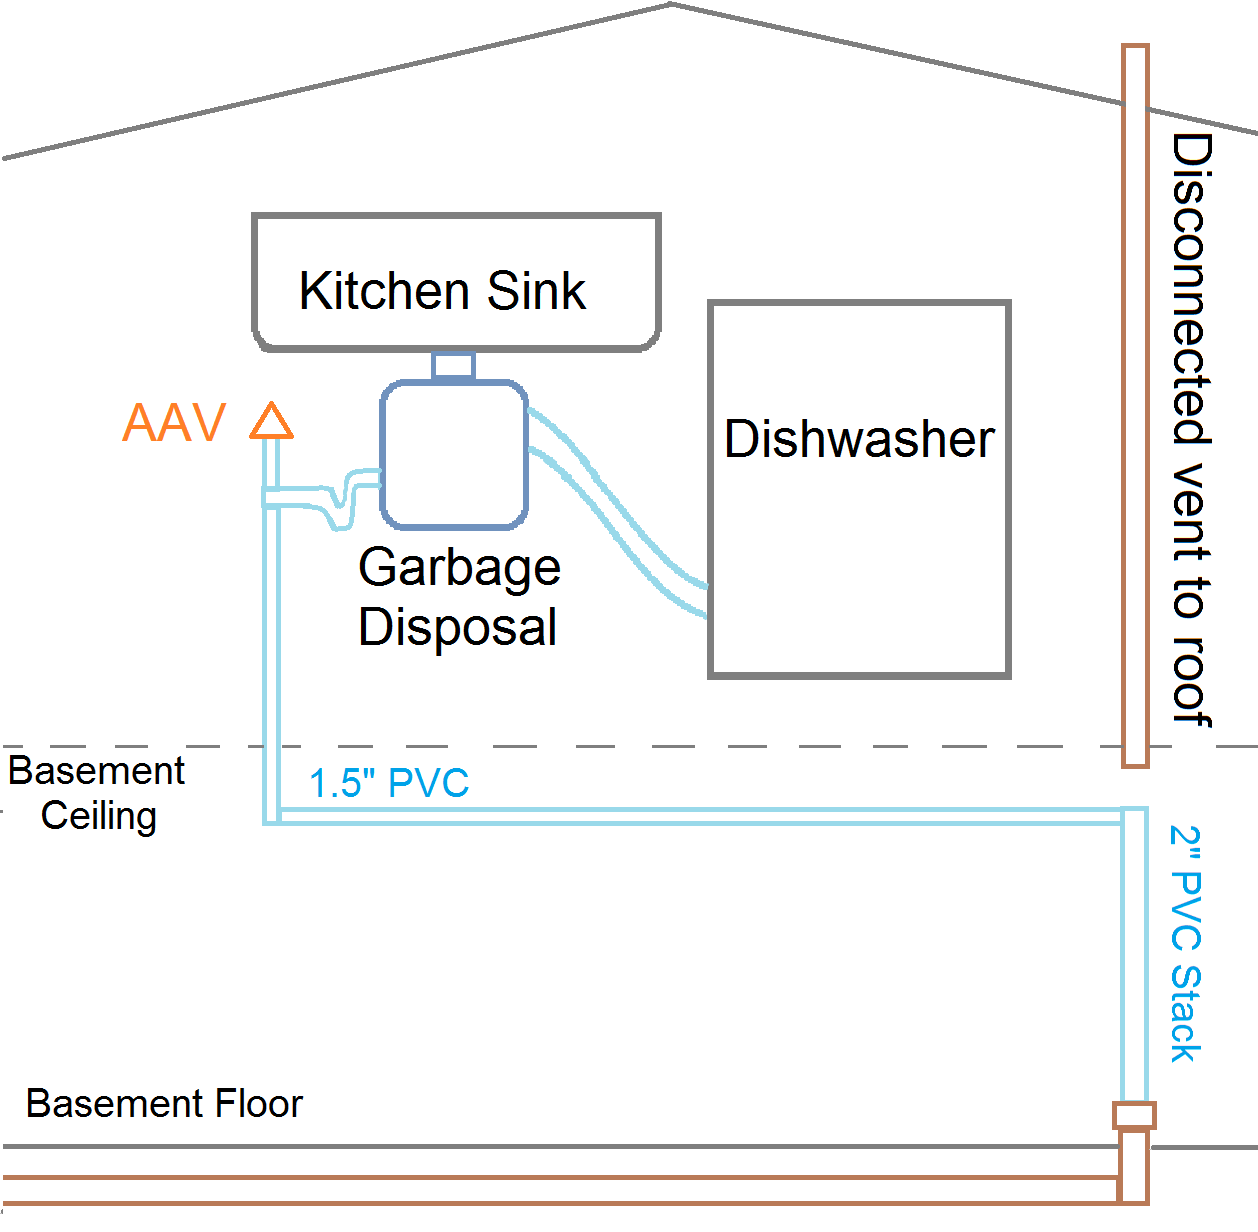 aav be able to leak water